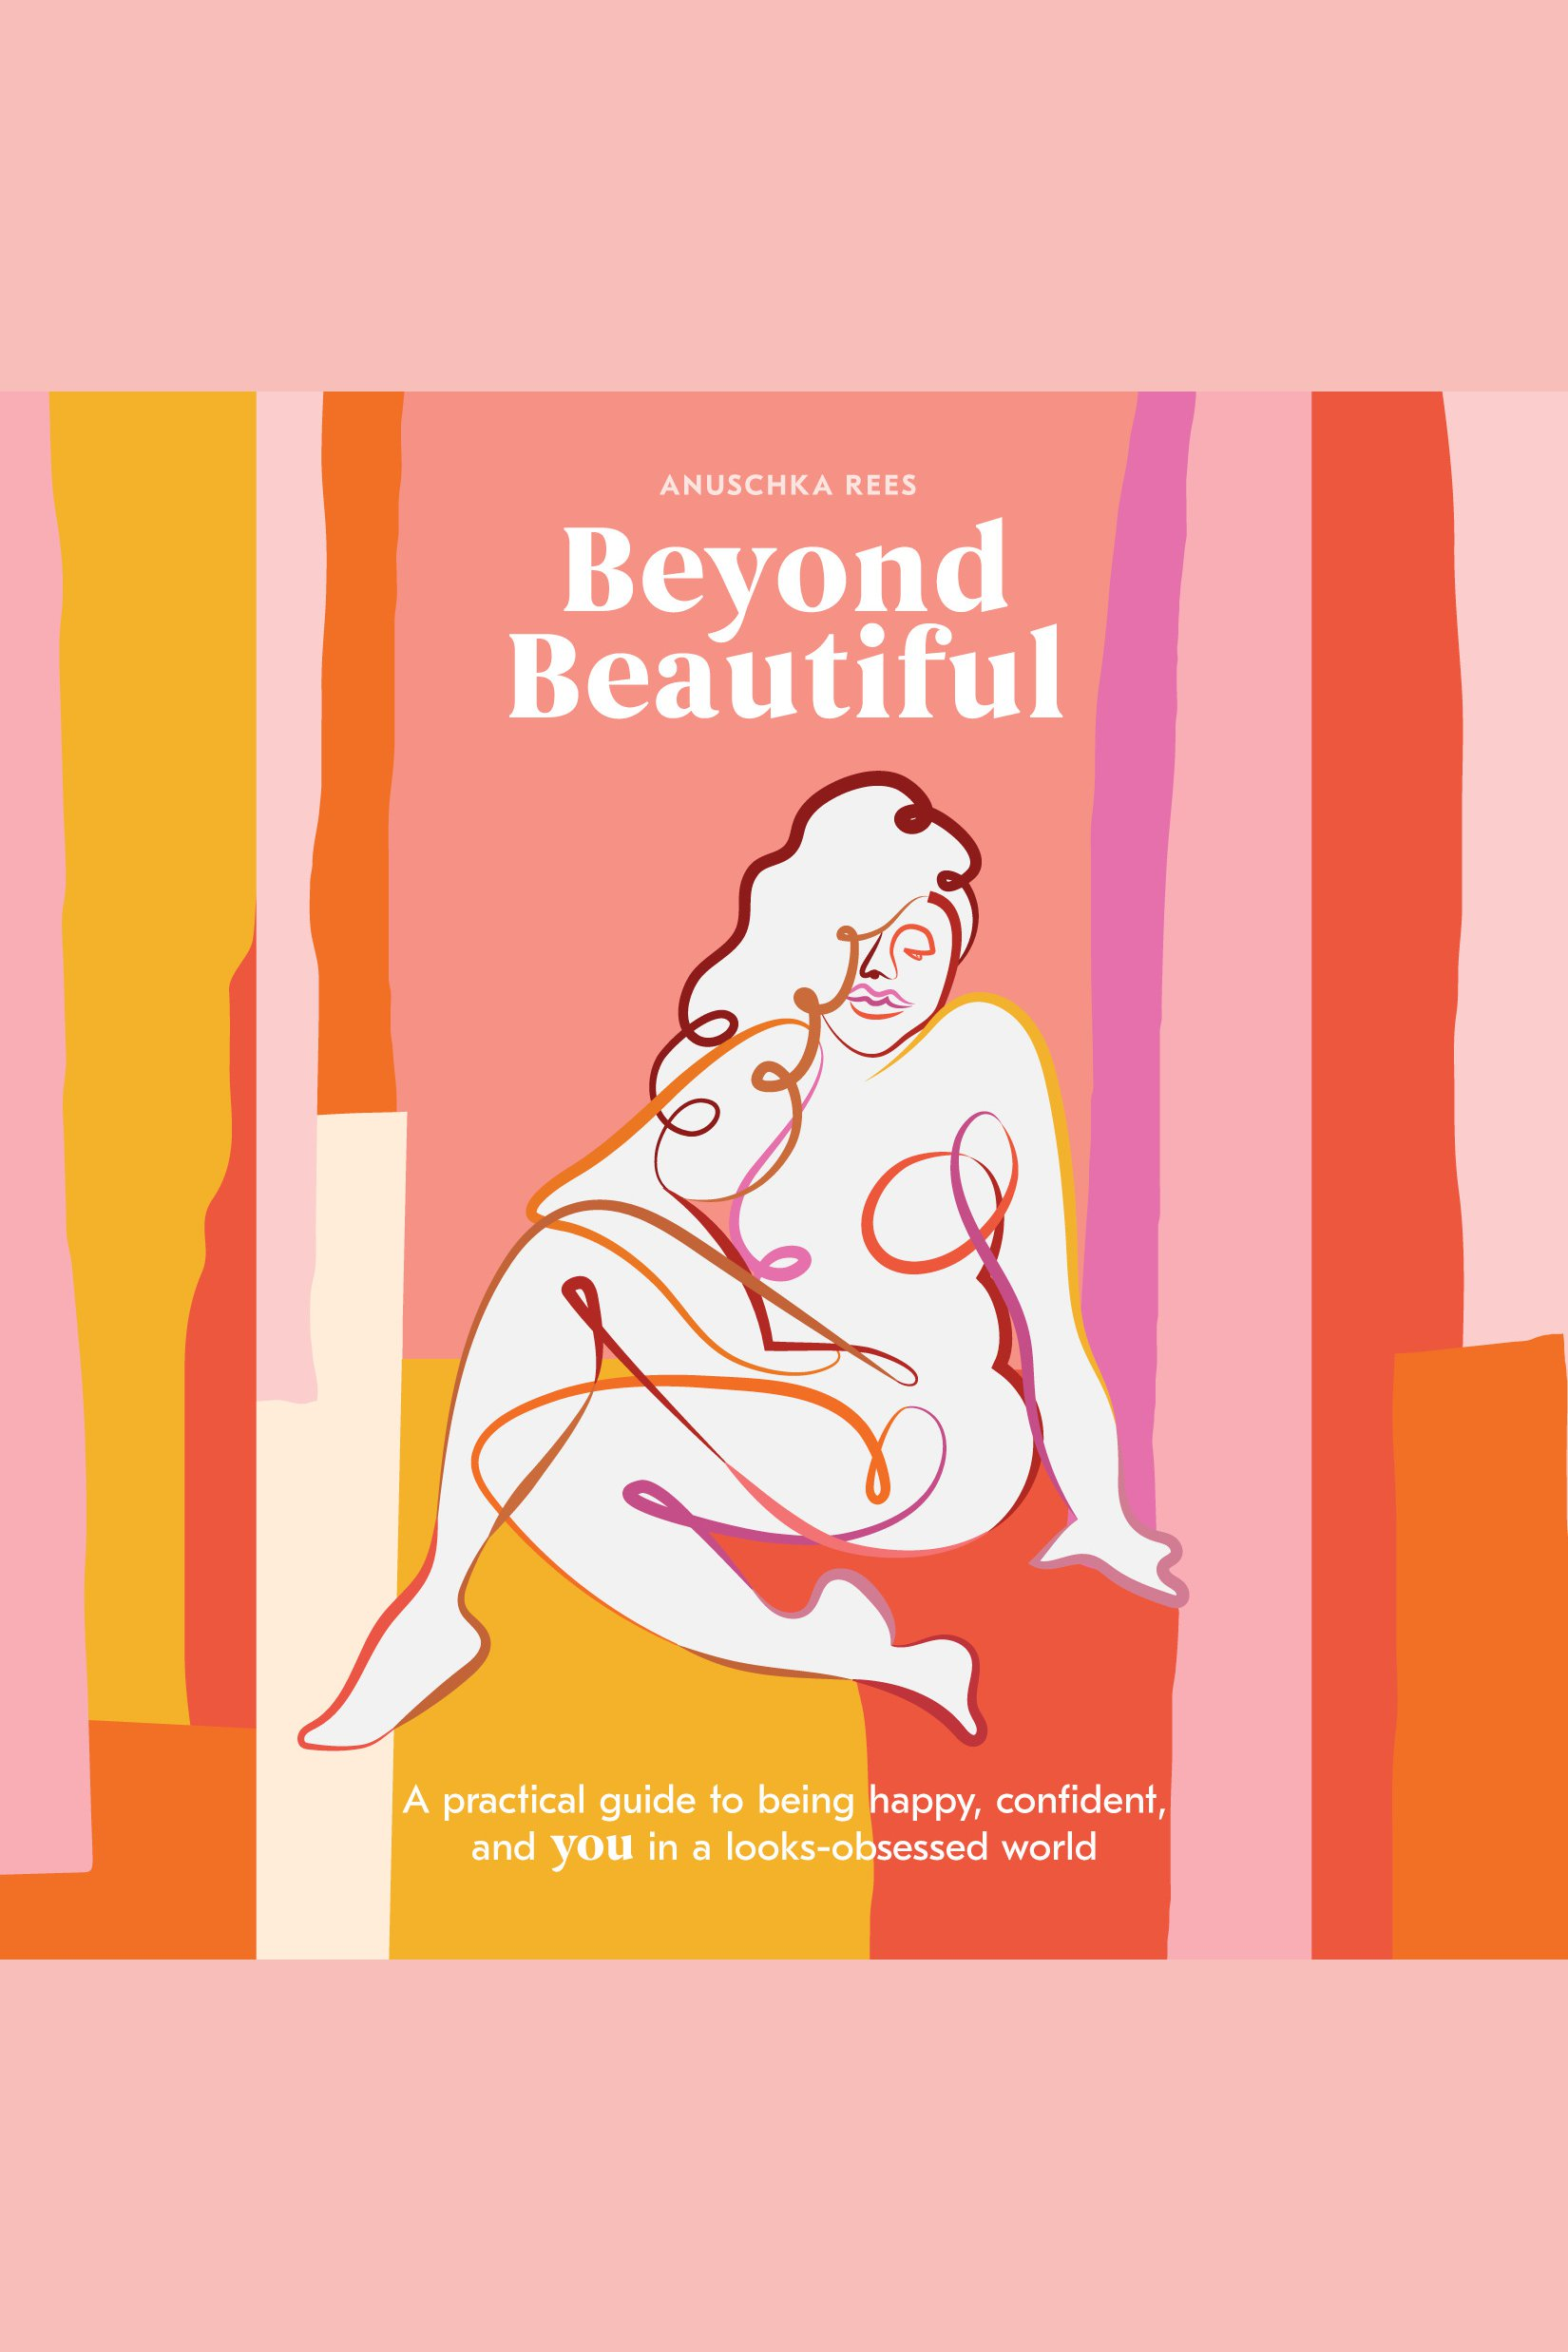 Beyond Beautiful A Practical Guide to Being Happy, Confident, and You in a Looks-Obsessed World